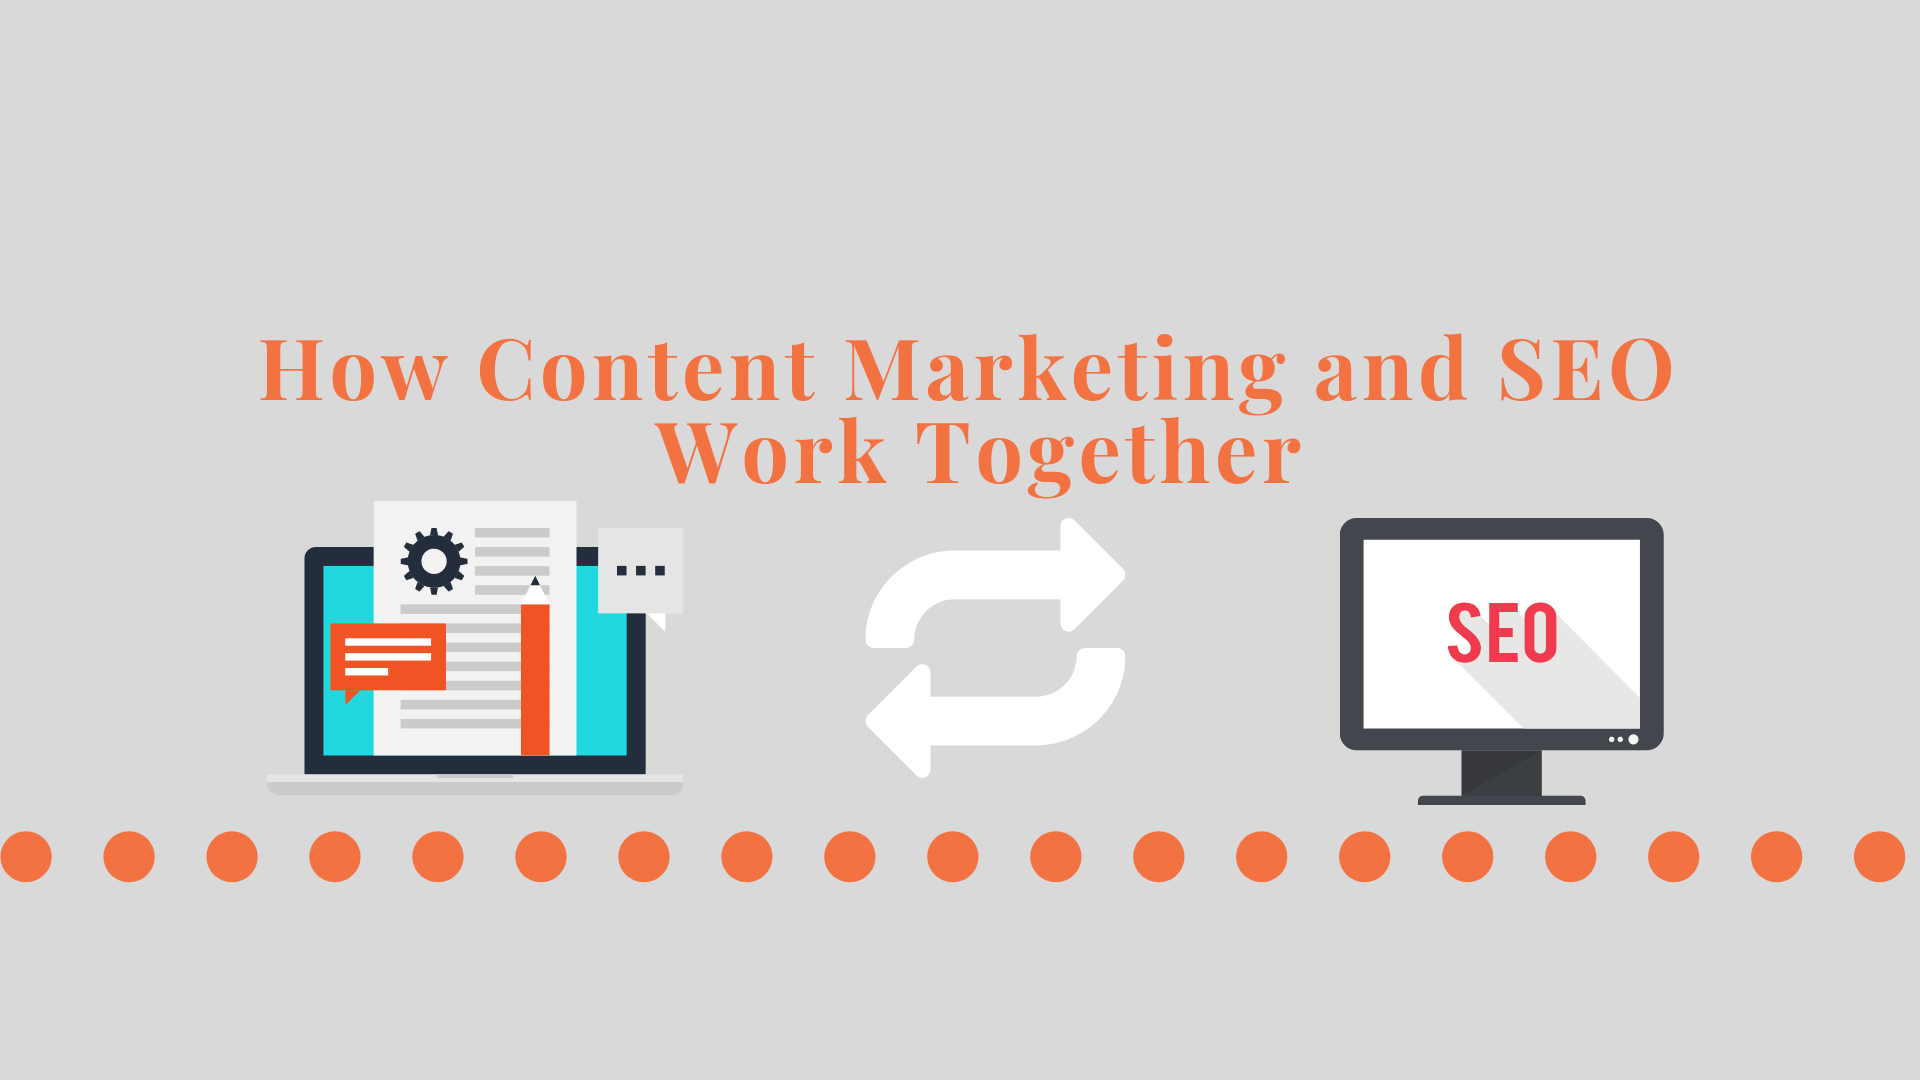 How Content Marketing and SEO Work Together